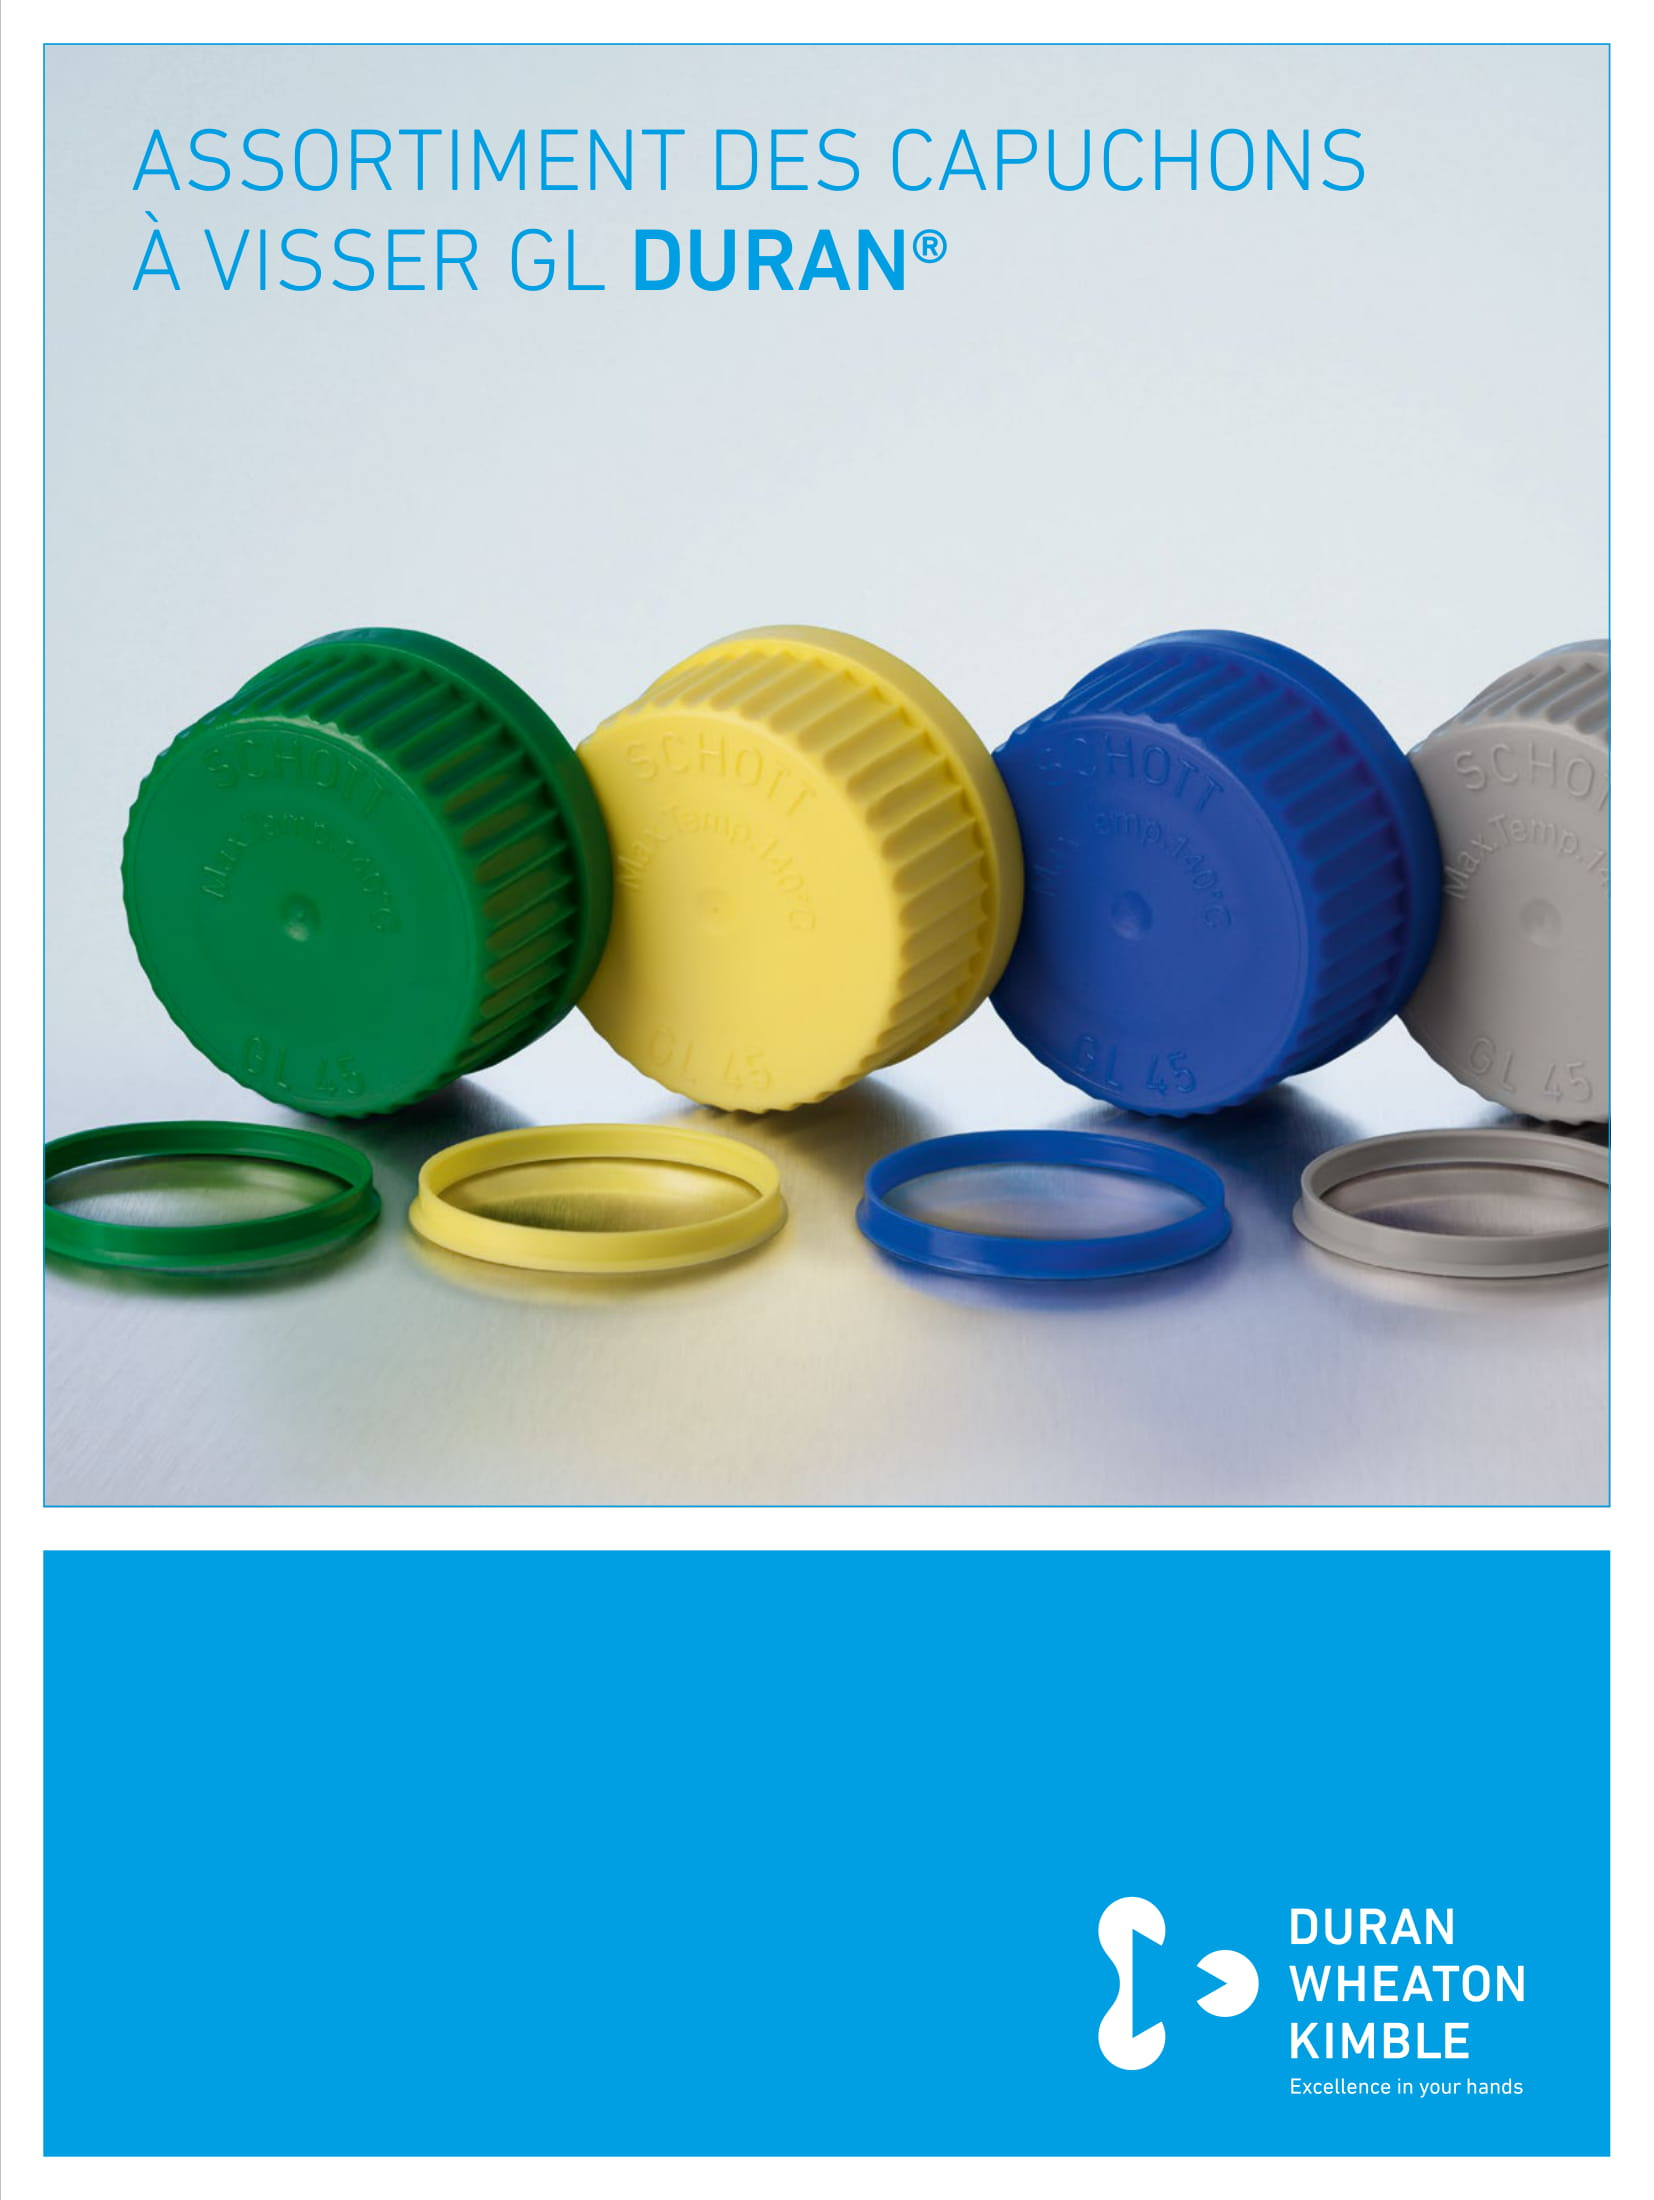 DURAN® Range of GL Threaded Screw Caps and Closures